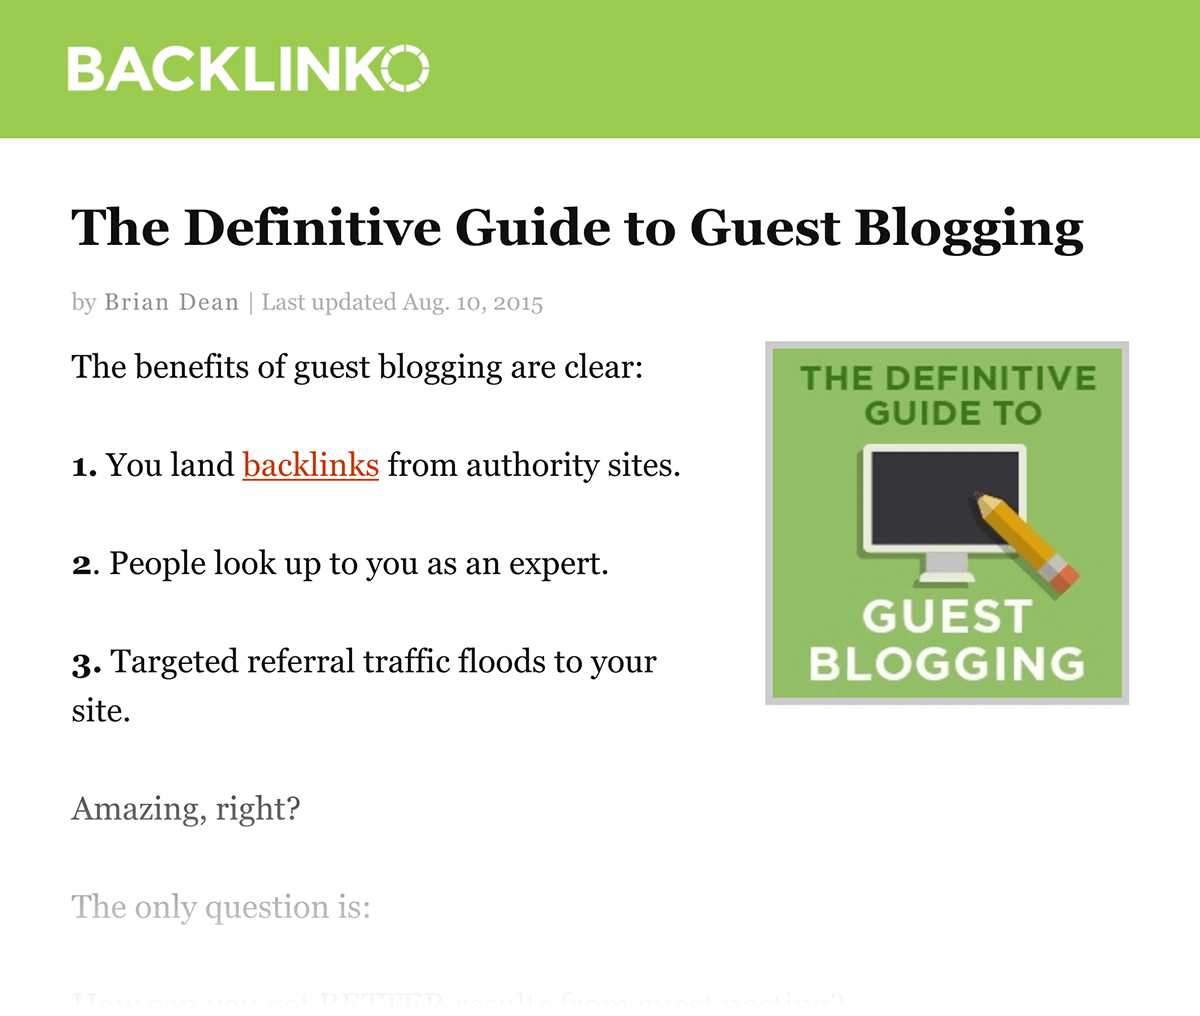 The Definitive Guide to Guest Blogging – Old version